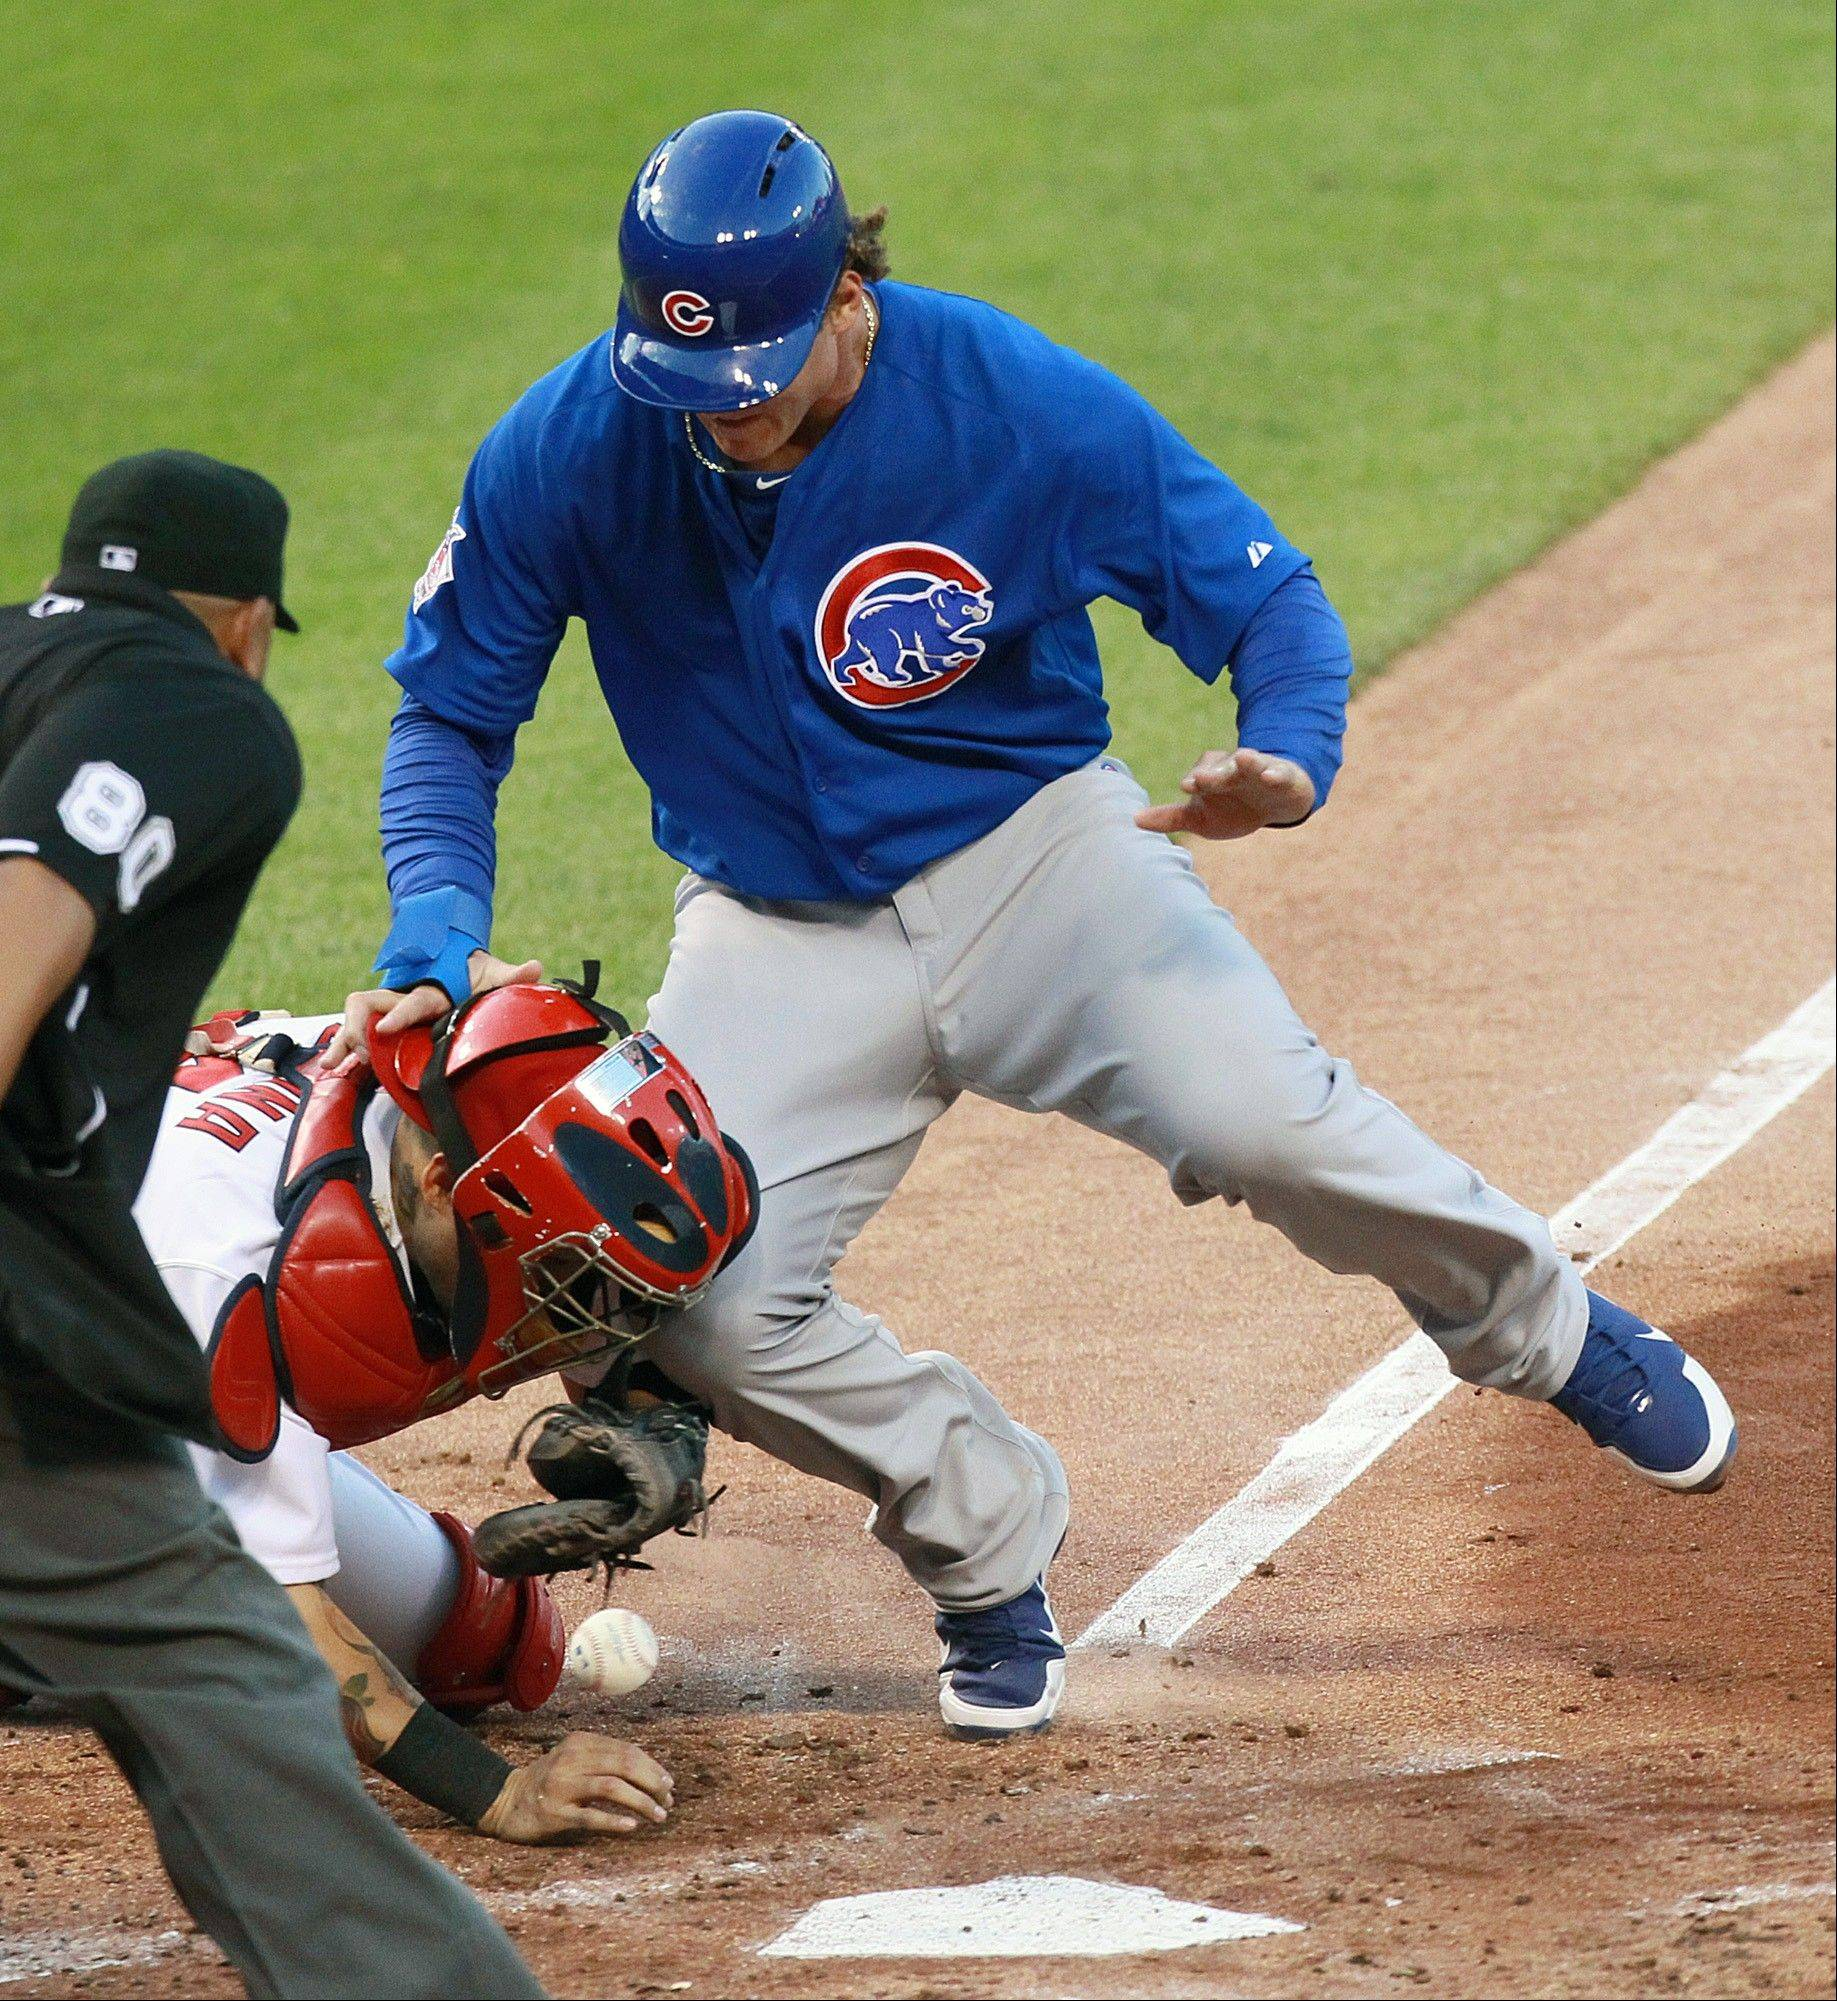 Anthony Rizzo knocks the ball loose from St. Louis Cardinals catcher Yadier Molina as he scores in the second inning of a baseball game against the Chicago Cubs on Wednesday, June 19, 2013, at Busch Stadium in St. Louis.